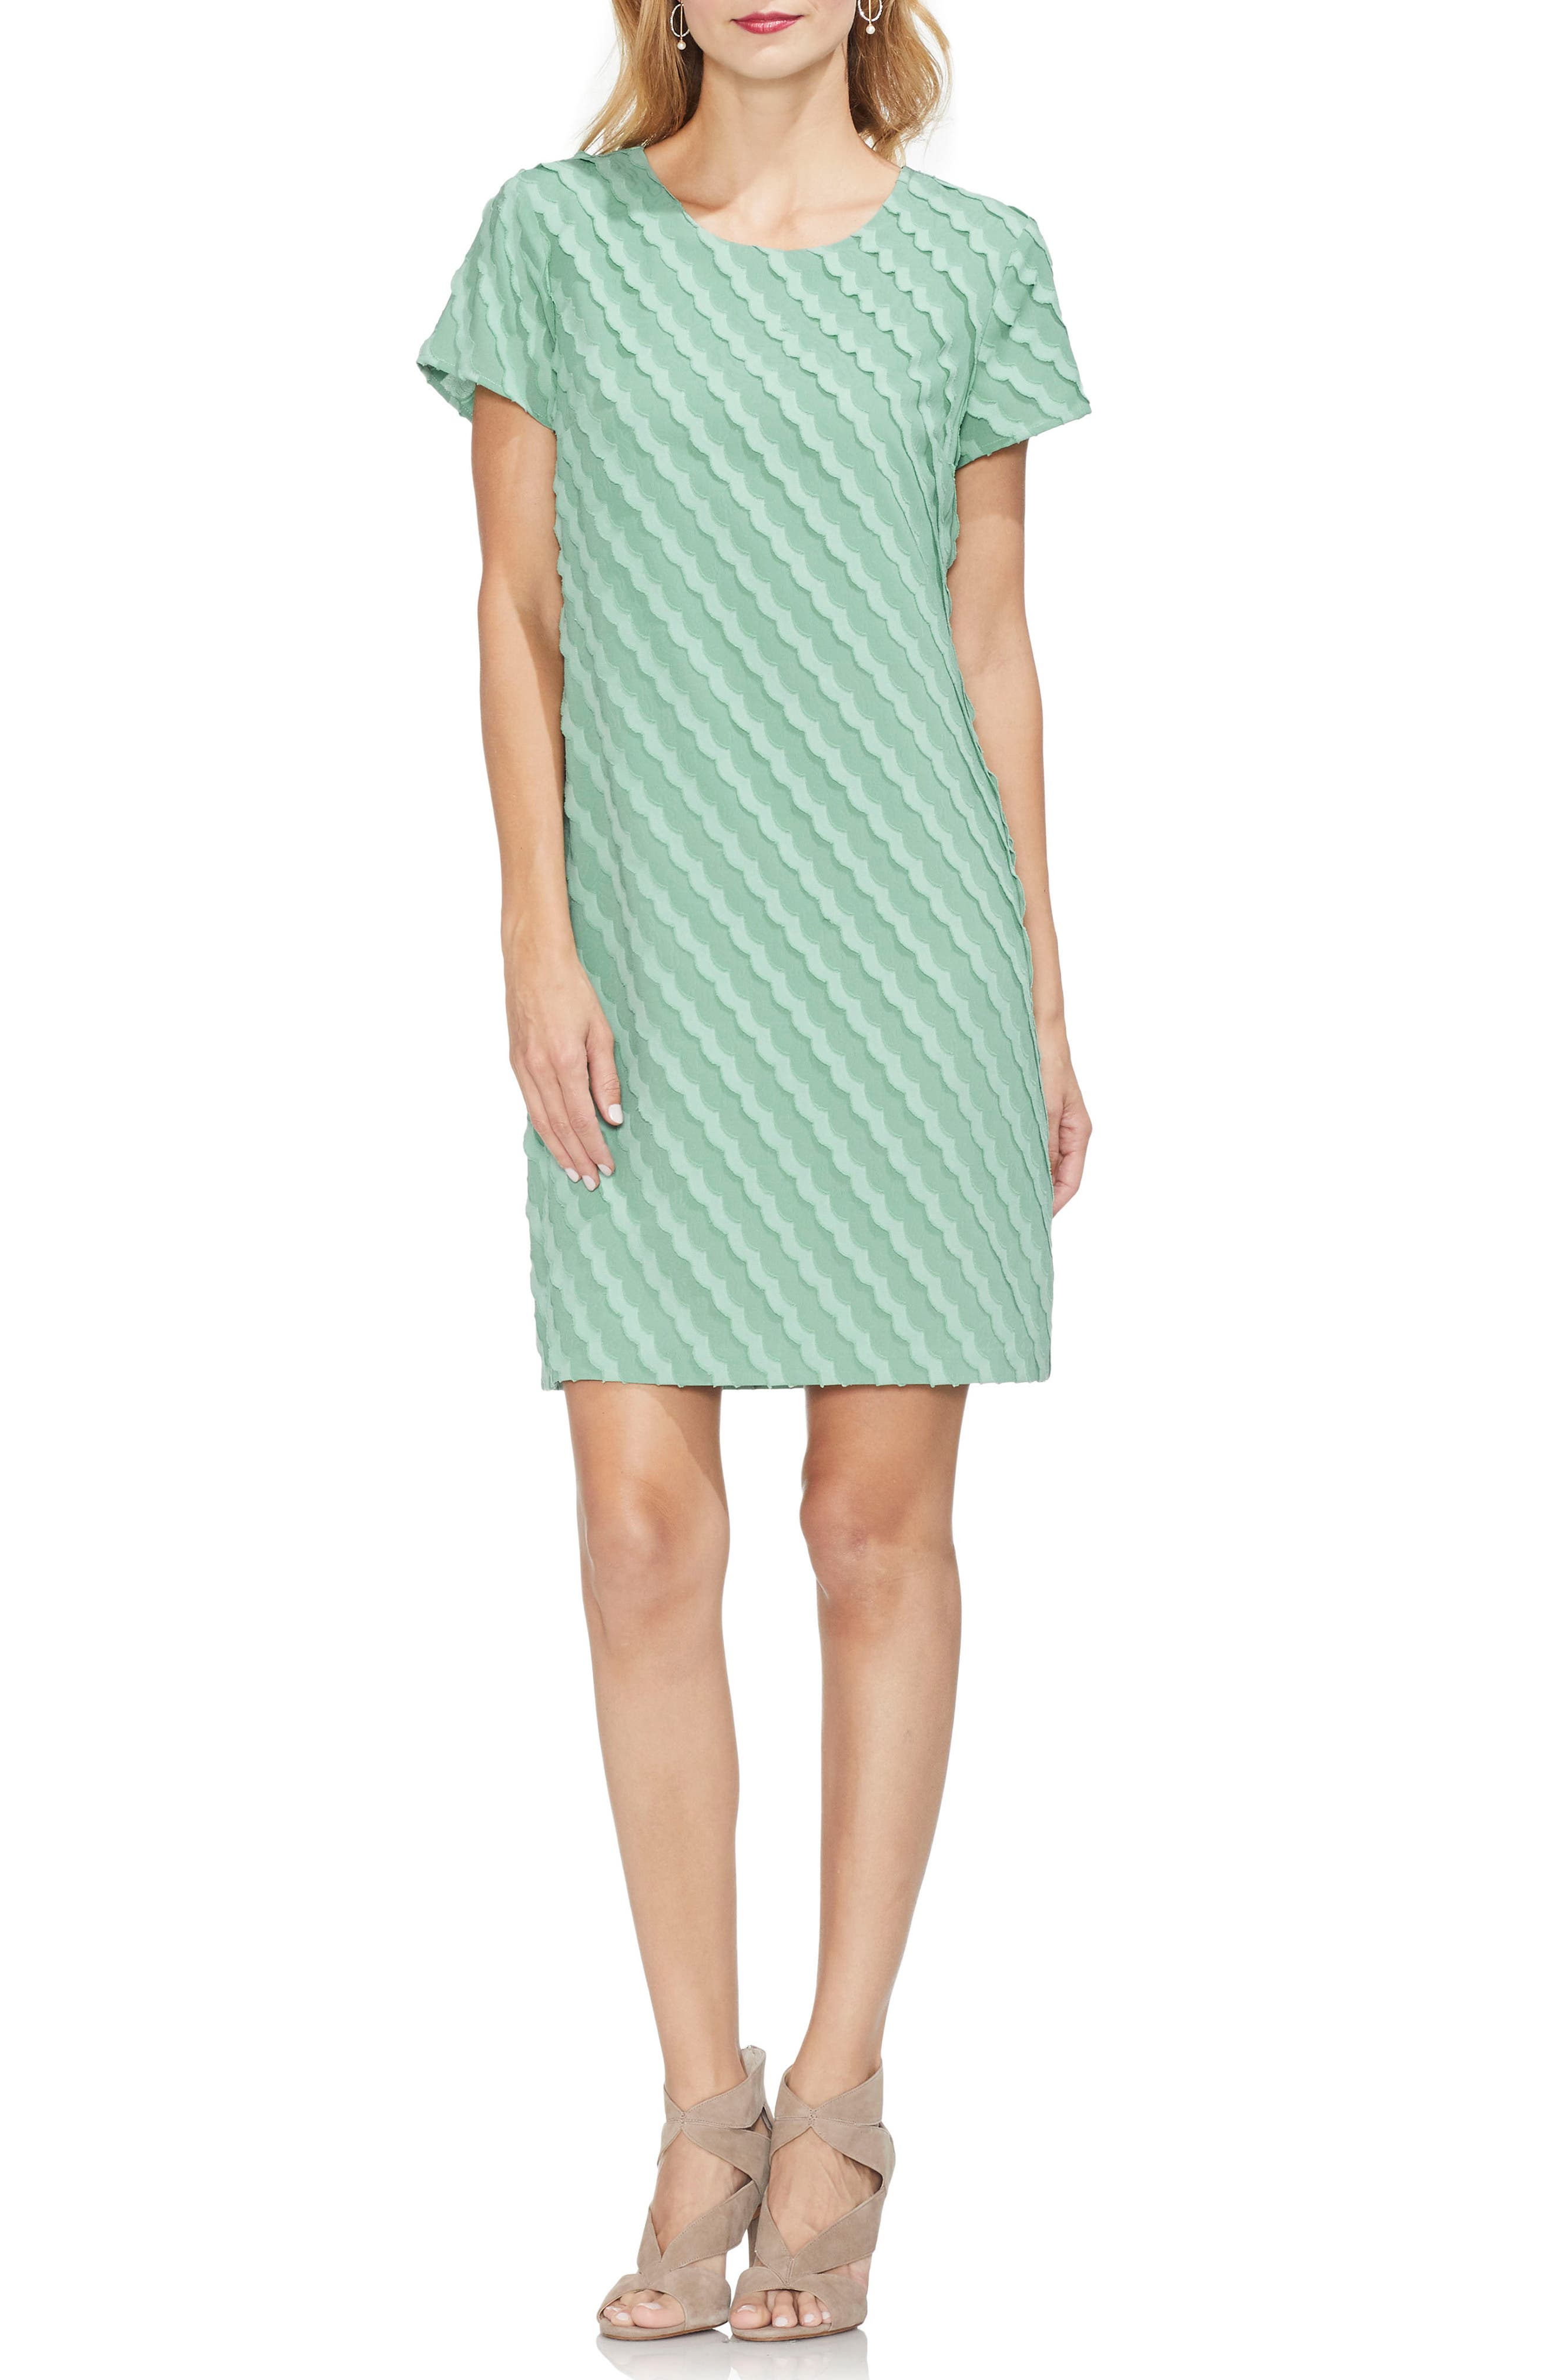 Vince Camuto Clipped Scallop Stripe Shift Dress, Green